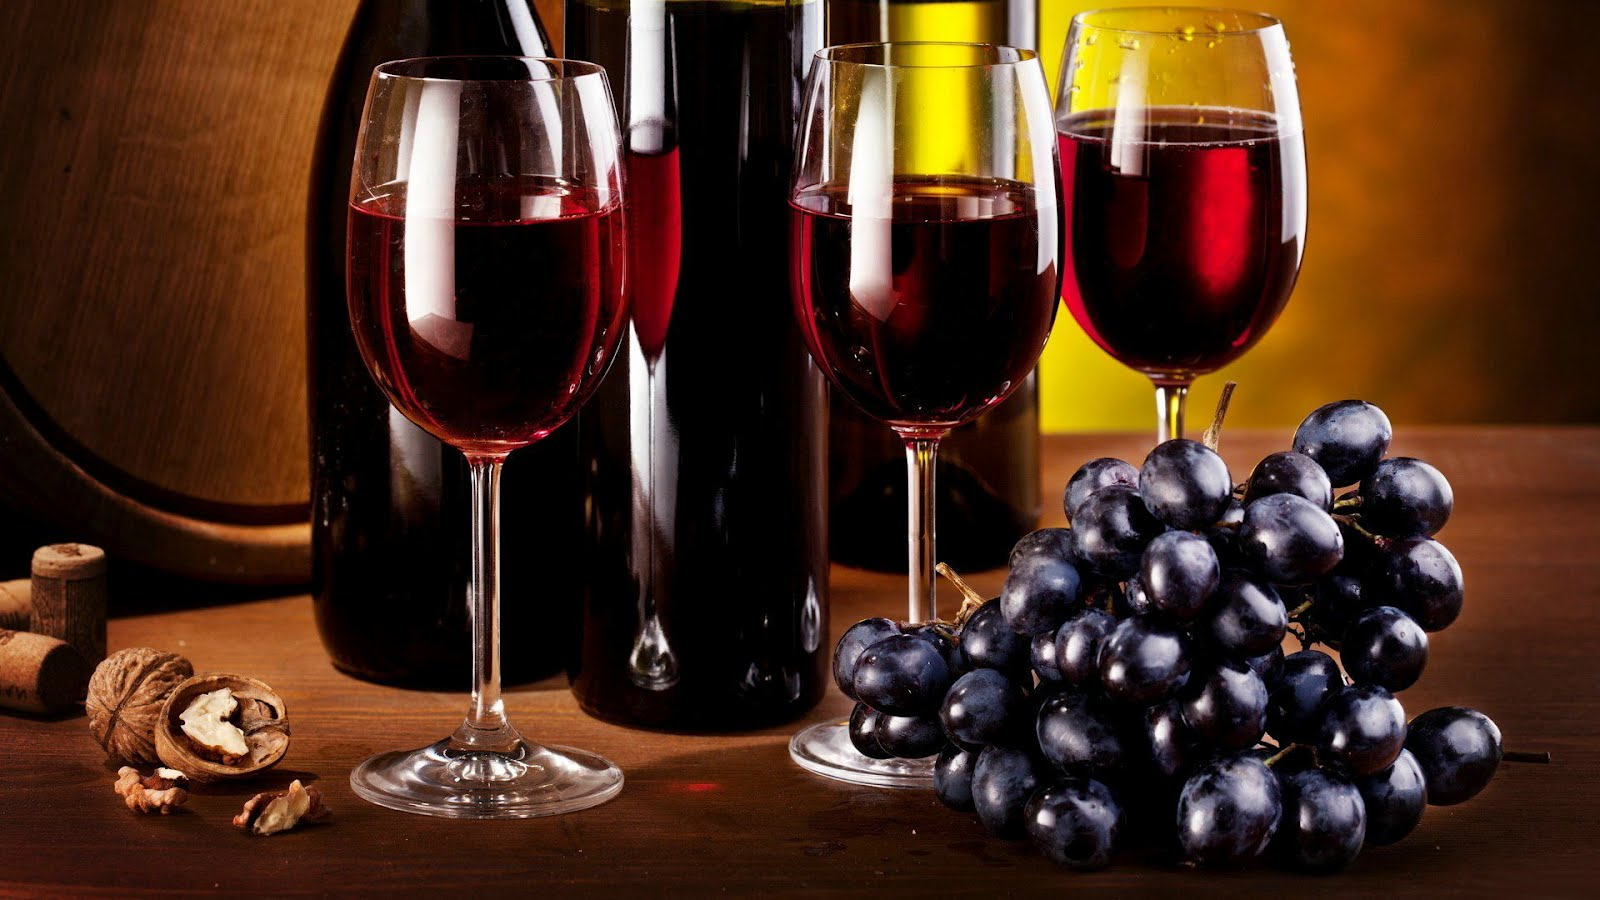 Vino tinto y uvas - Grapes and Wine